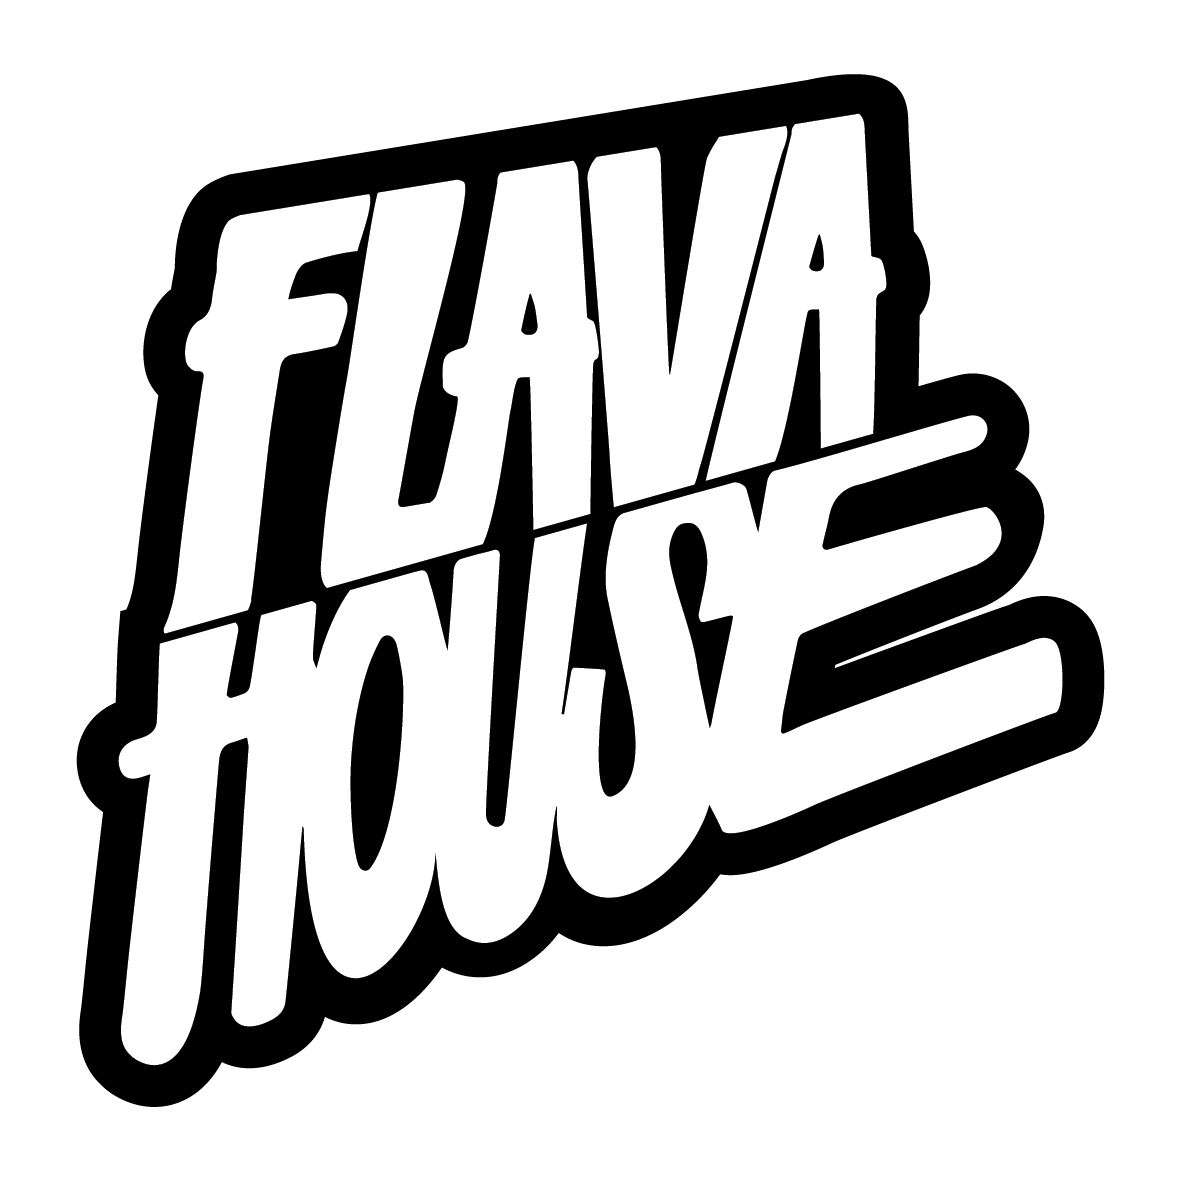 FLAVA HOUSE.png